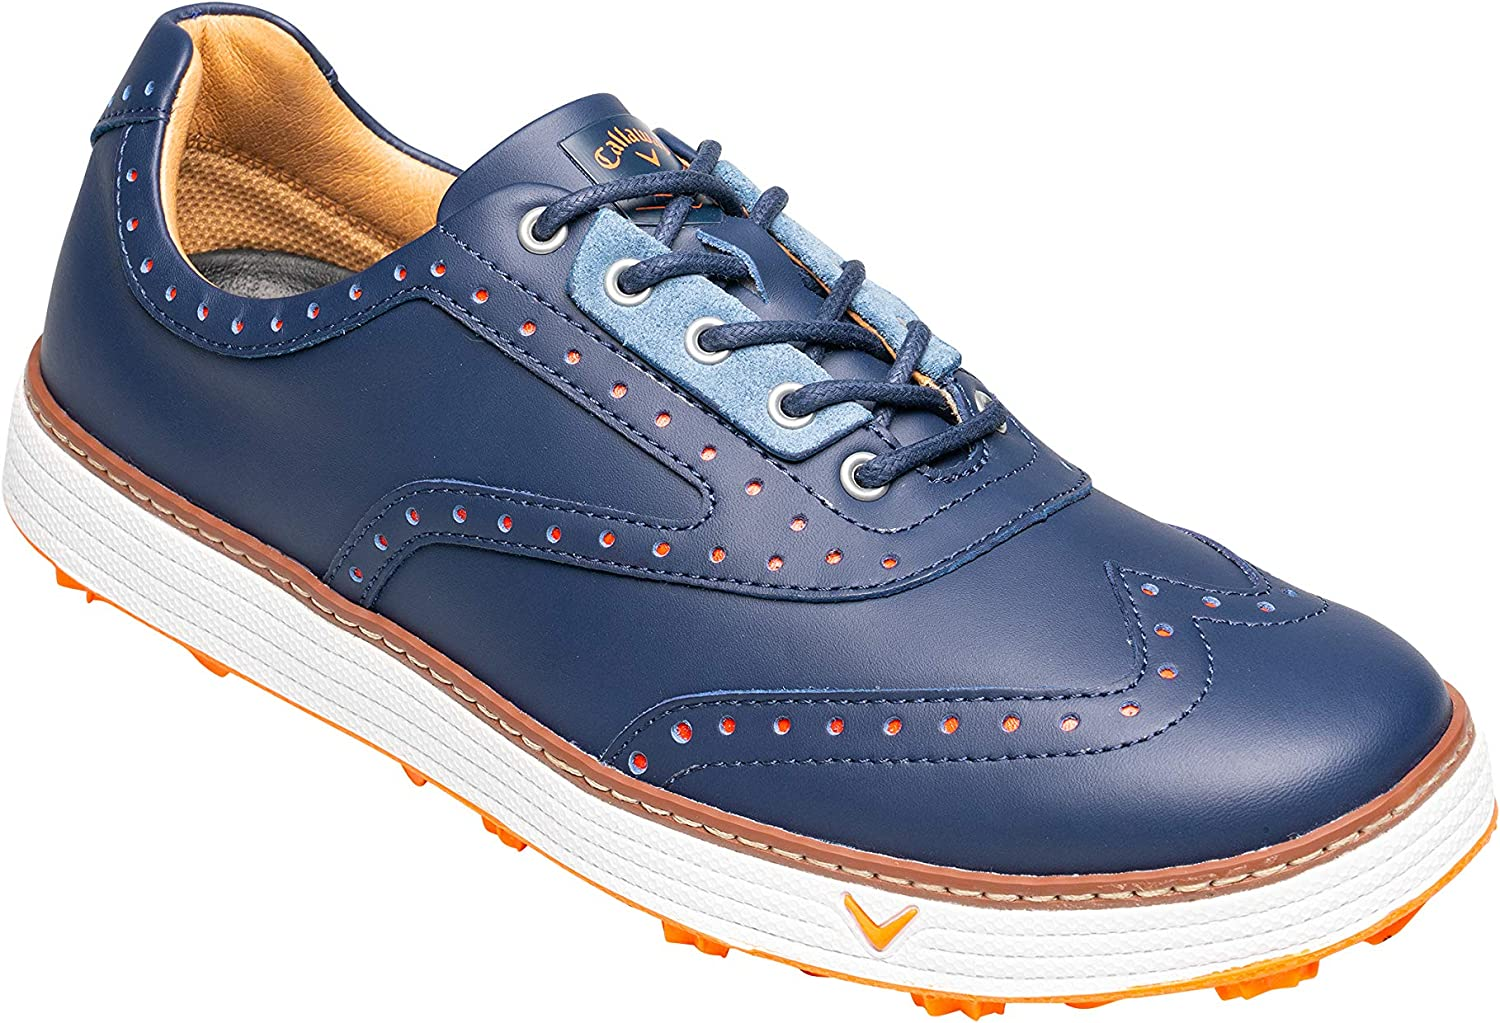 Callaway Men S Del Mar Retro Waterproof Spikeless Golf Shoes Blue Navy 11 46 Eu Amazon Co Uk Shoes Bags